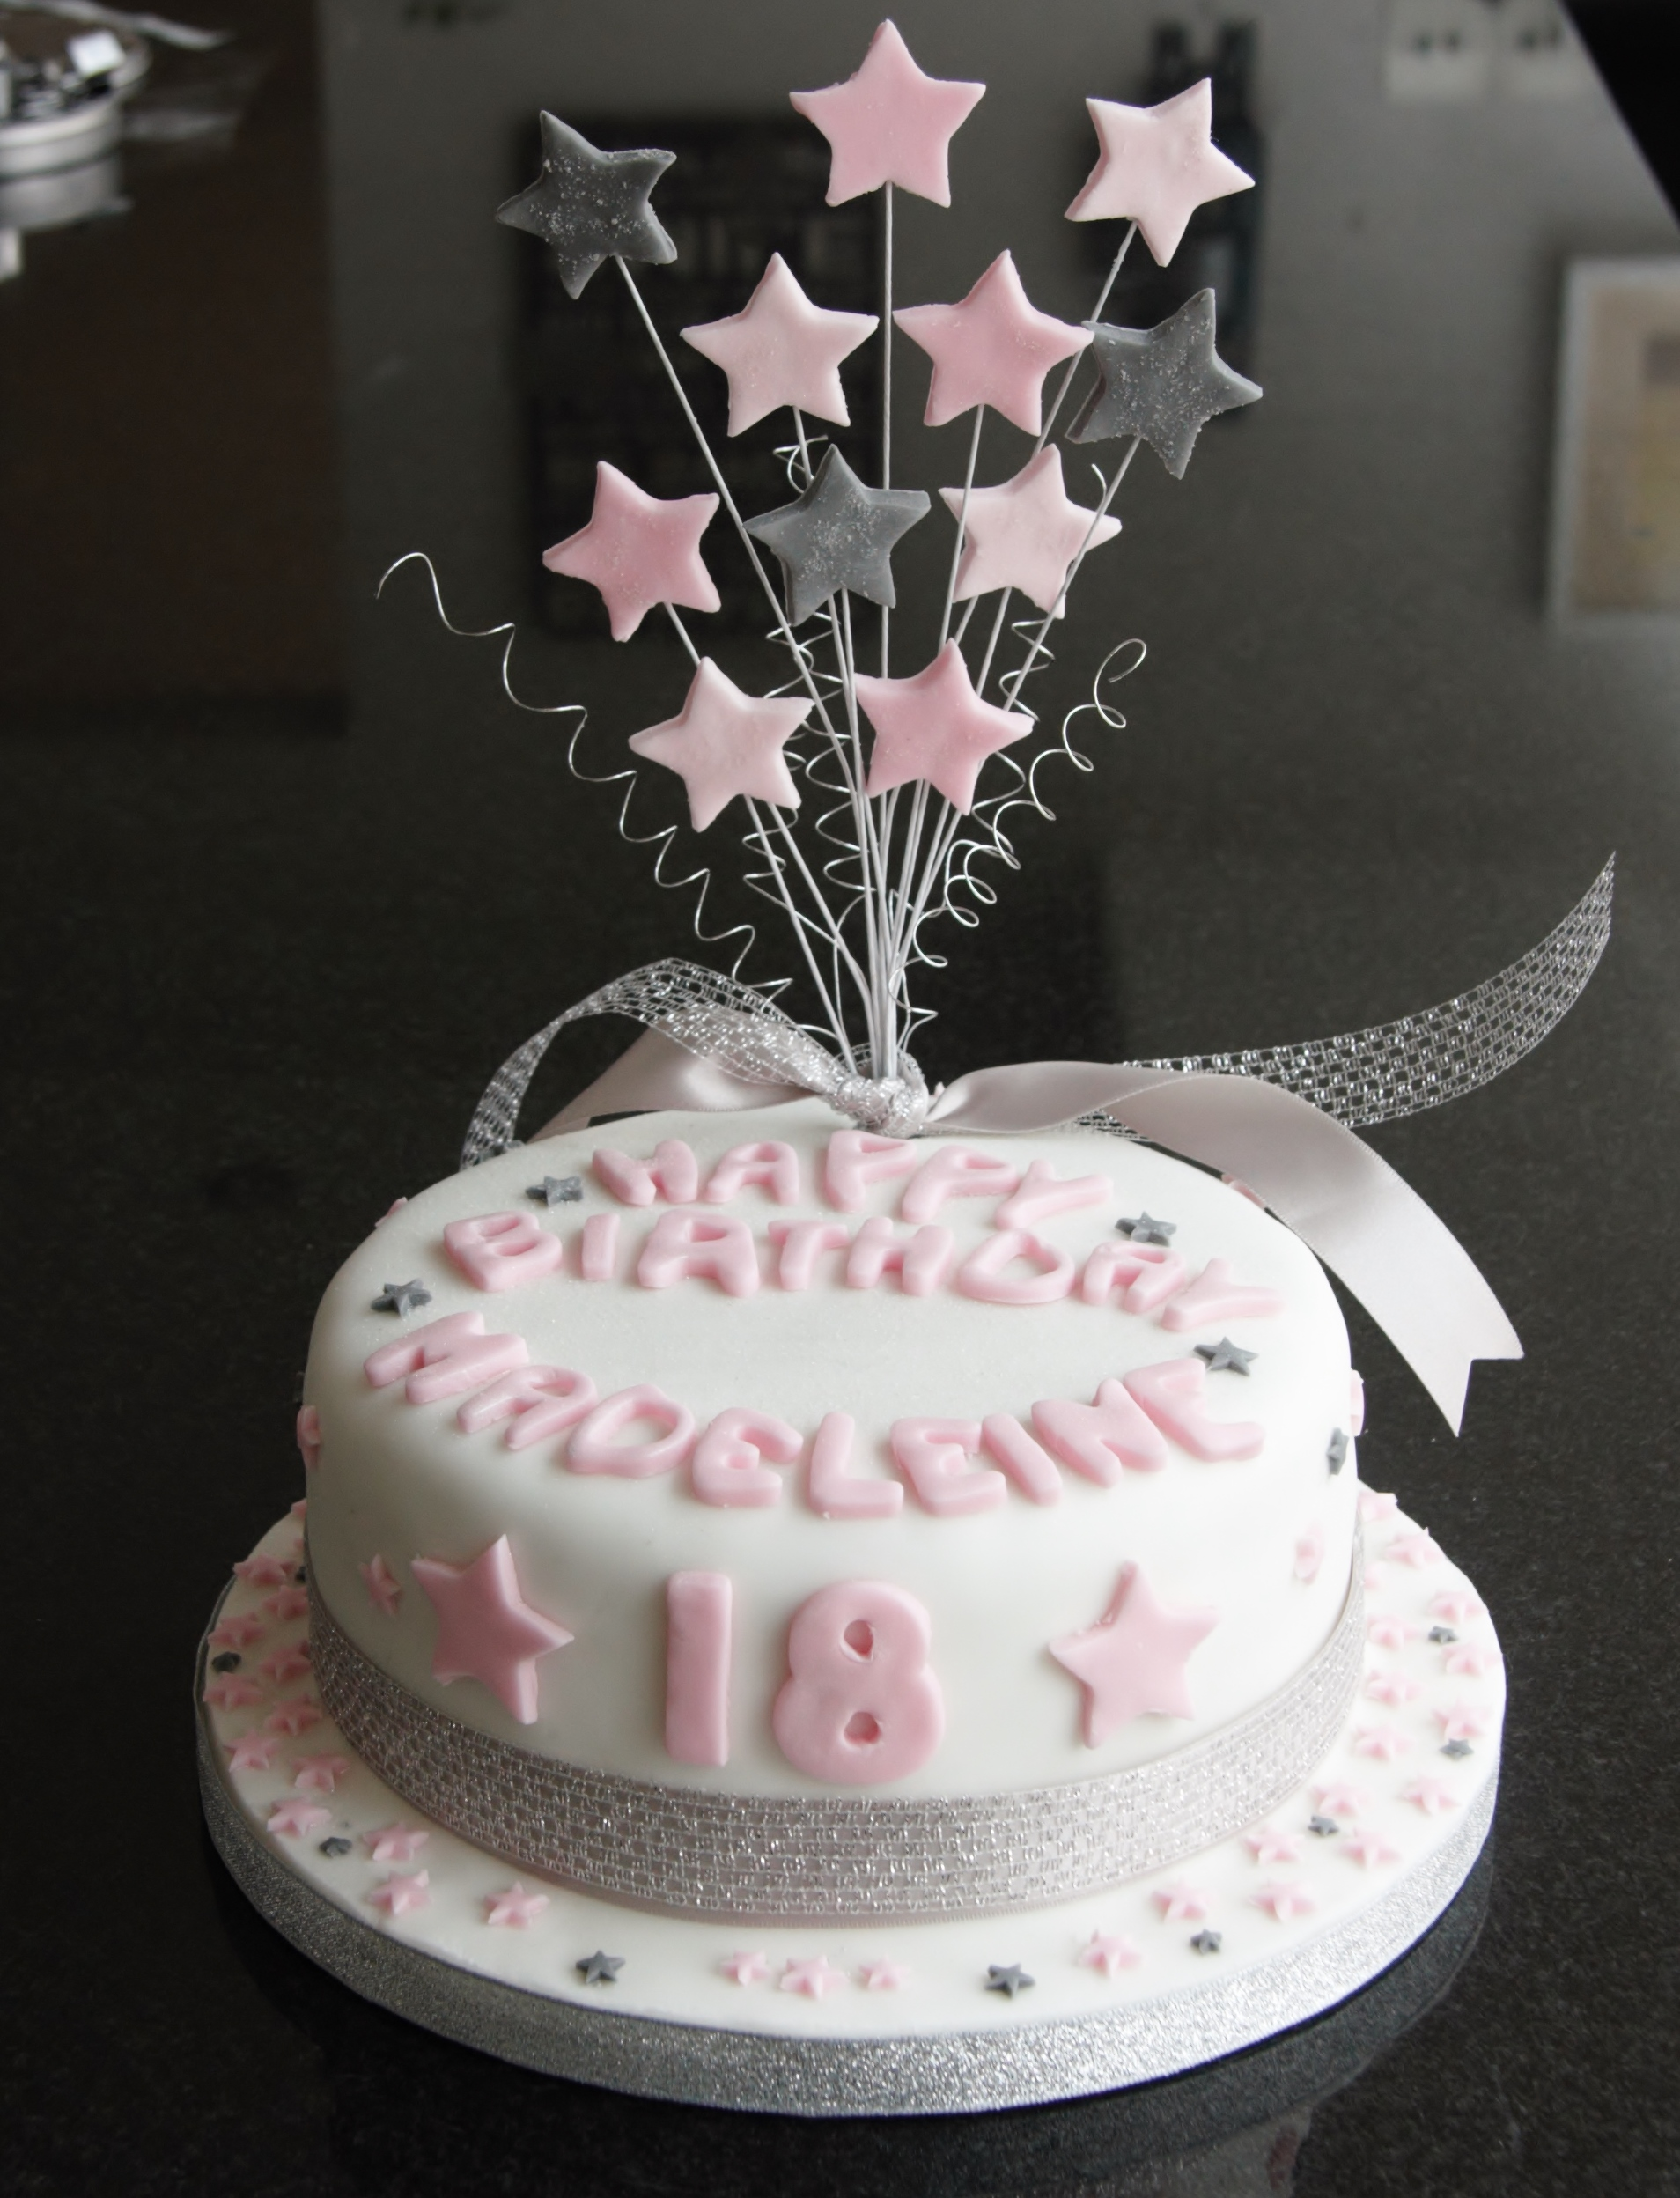 Cake Design 18th Birthday Girl : 18th Birthday Star Cake and Cupcakes   lovinghomemade